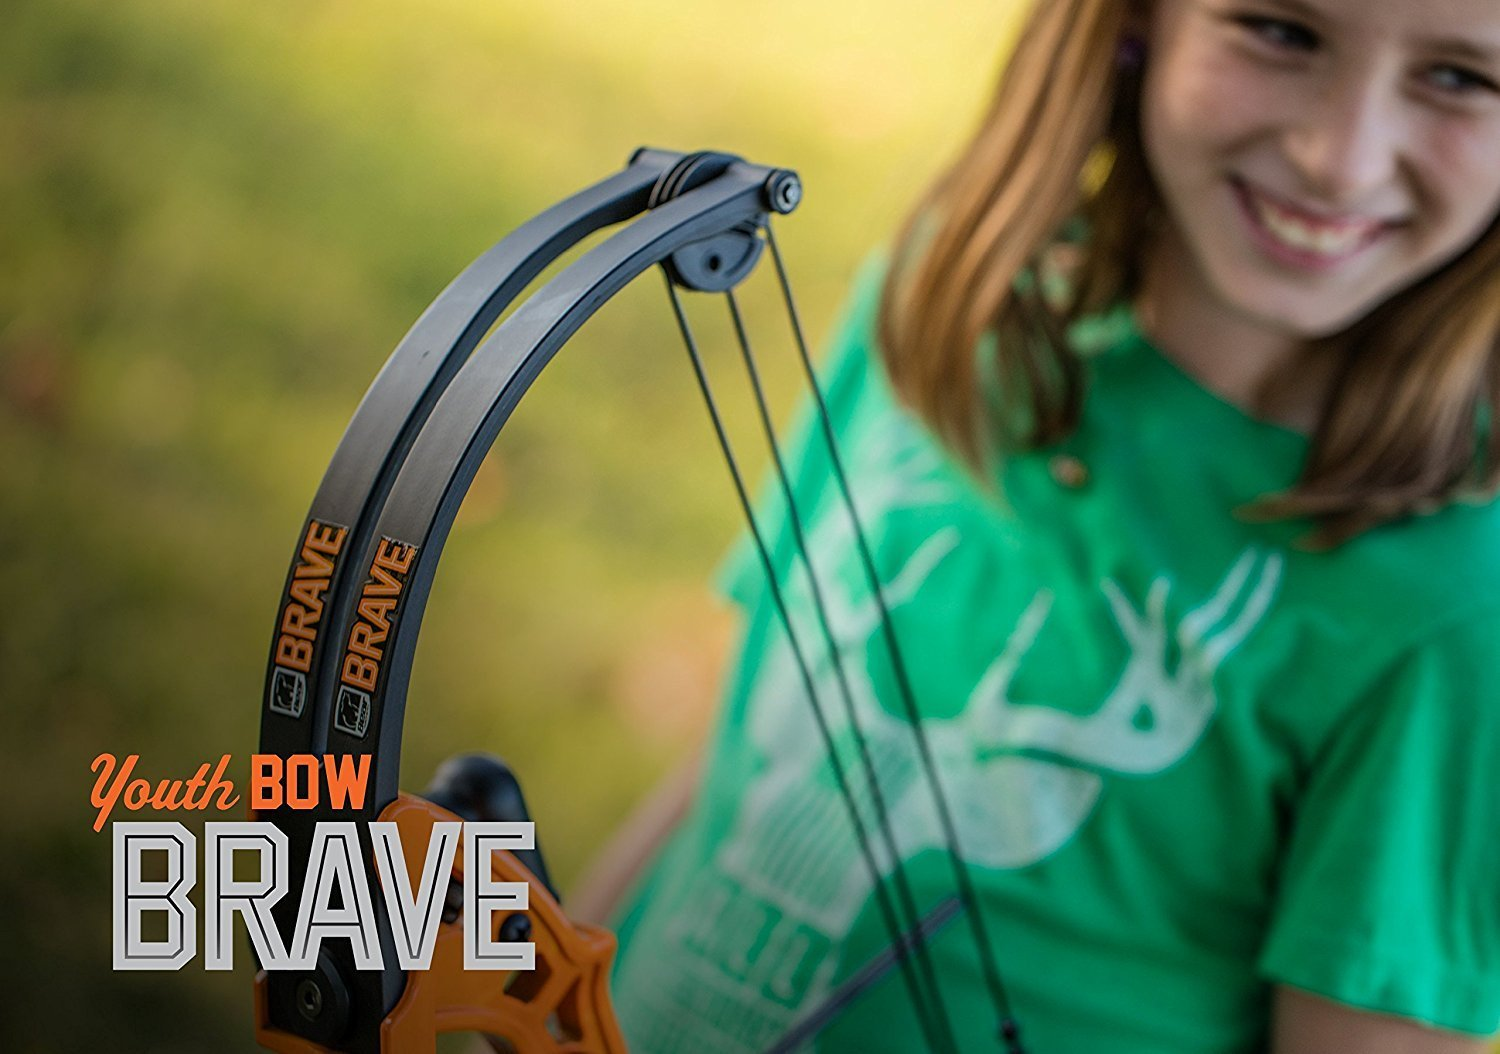 By-Ear Archery Compound Bow, Brave Youth Set Girls Boys Compound Bow Kids, Black by By-Ear Archery (Image #5)